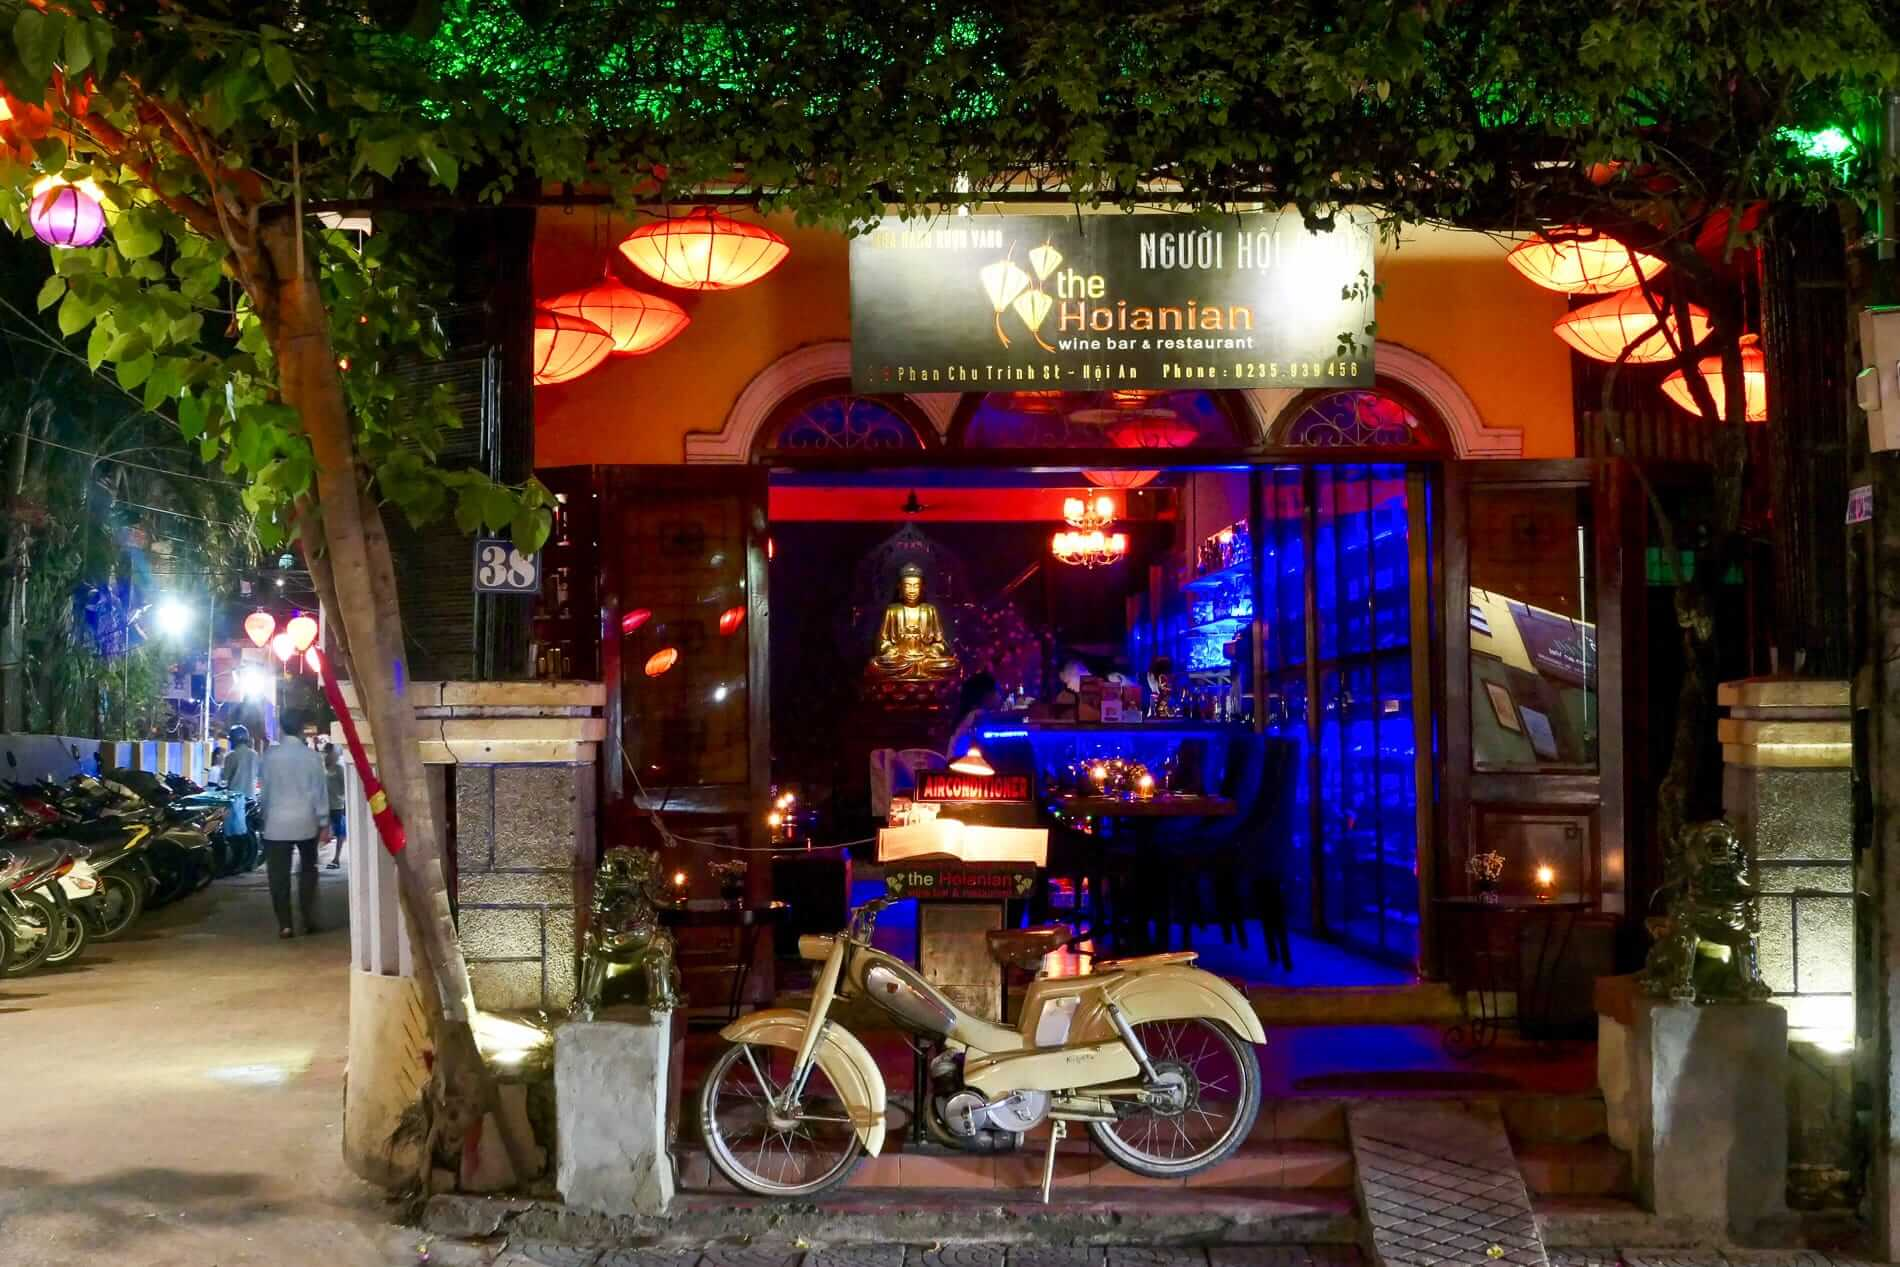 A view of The Hoianian Wine Bar in Hoi An